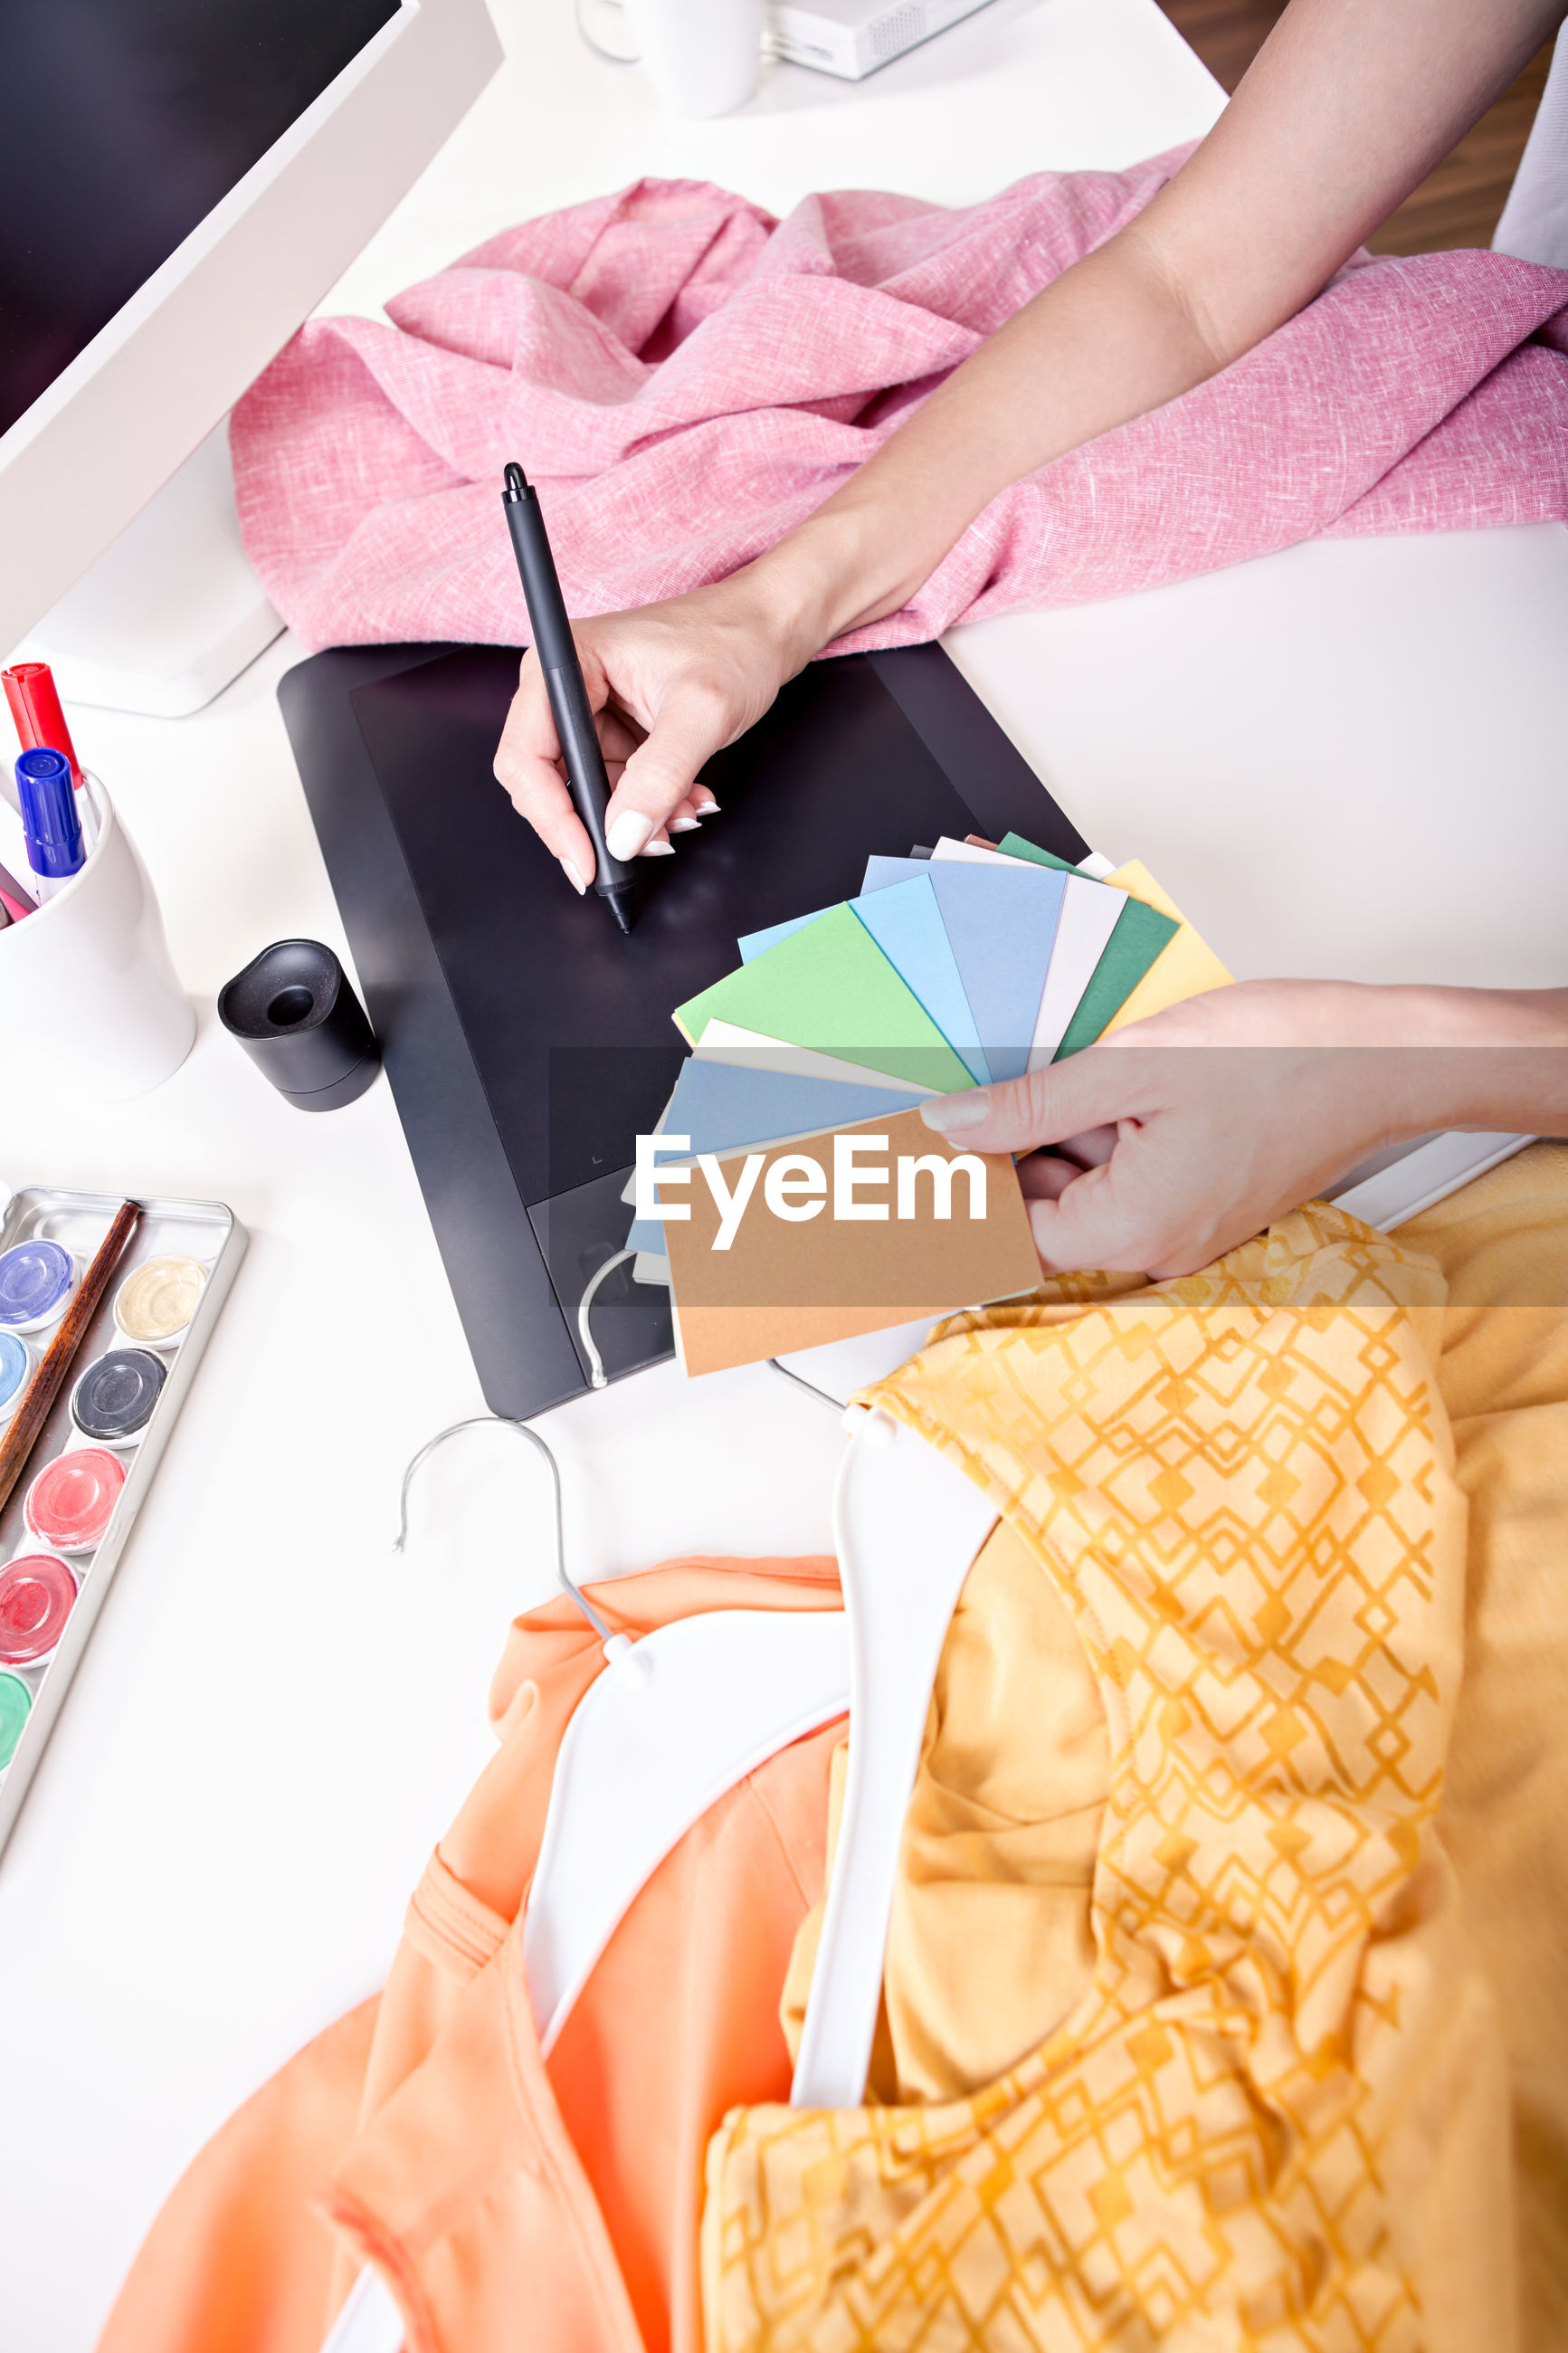 Midsection of woman with color swatches using graphics tablet on table